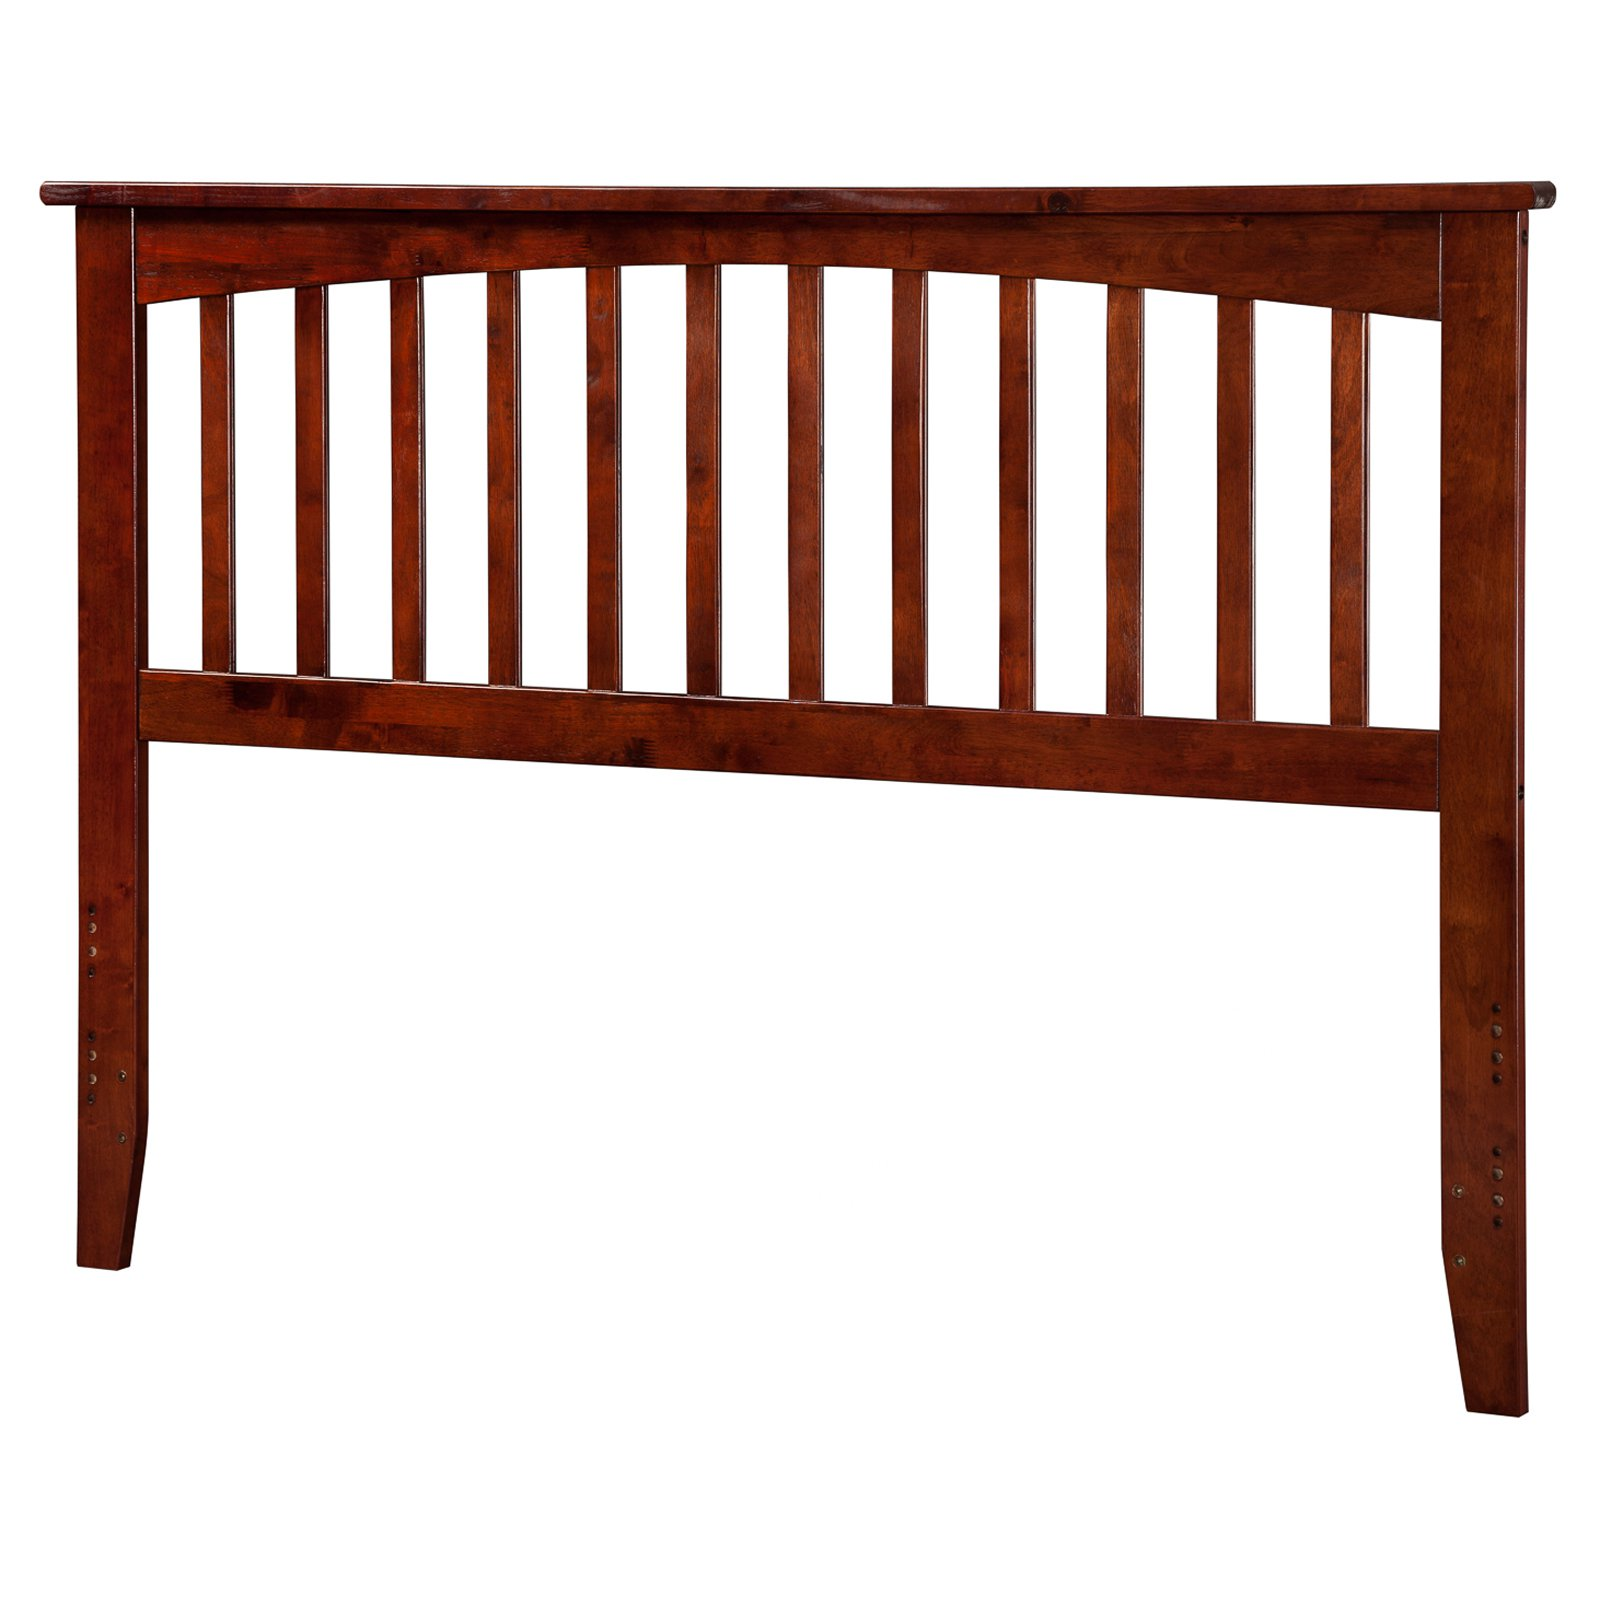 stores dcg with ytf wood bed jana mission arched headboard style footboard and